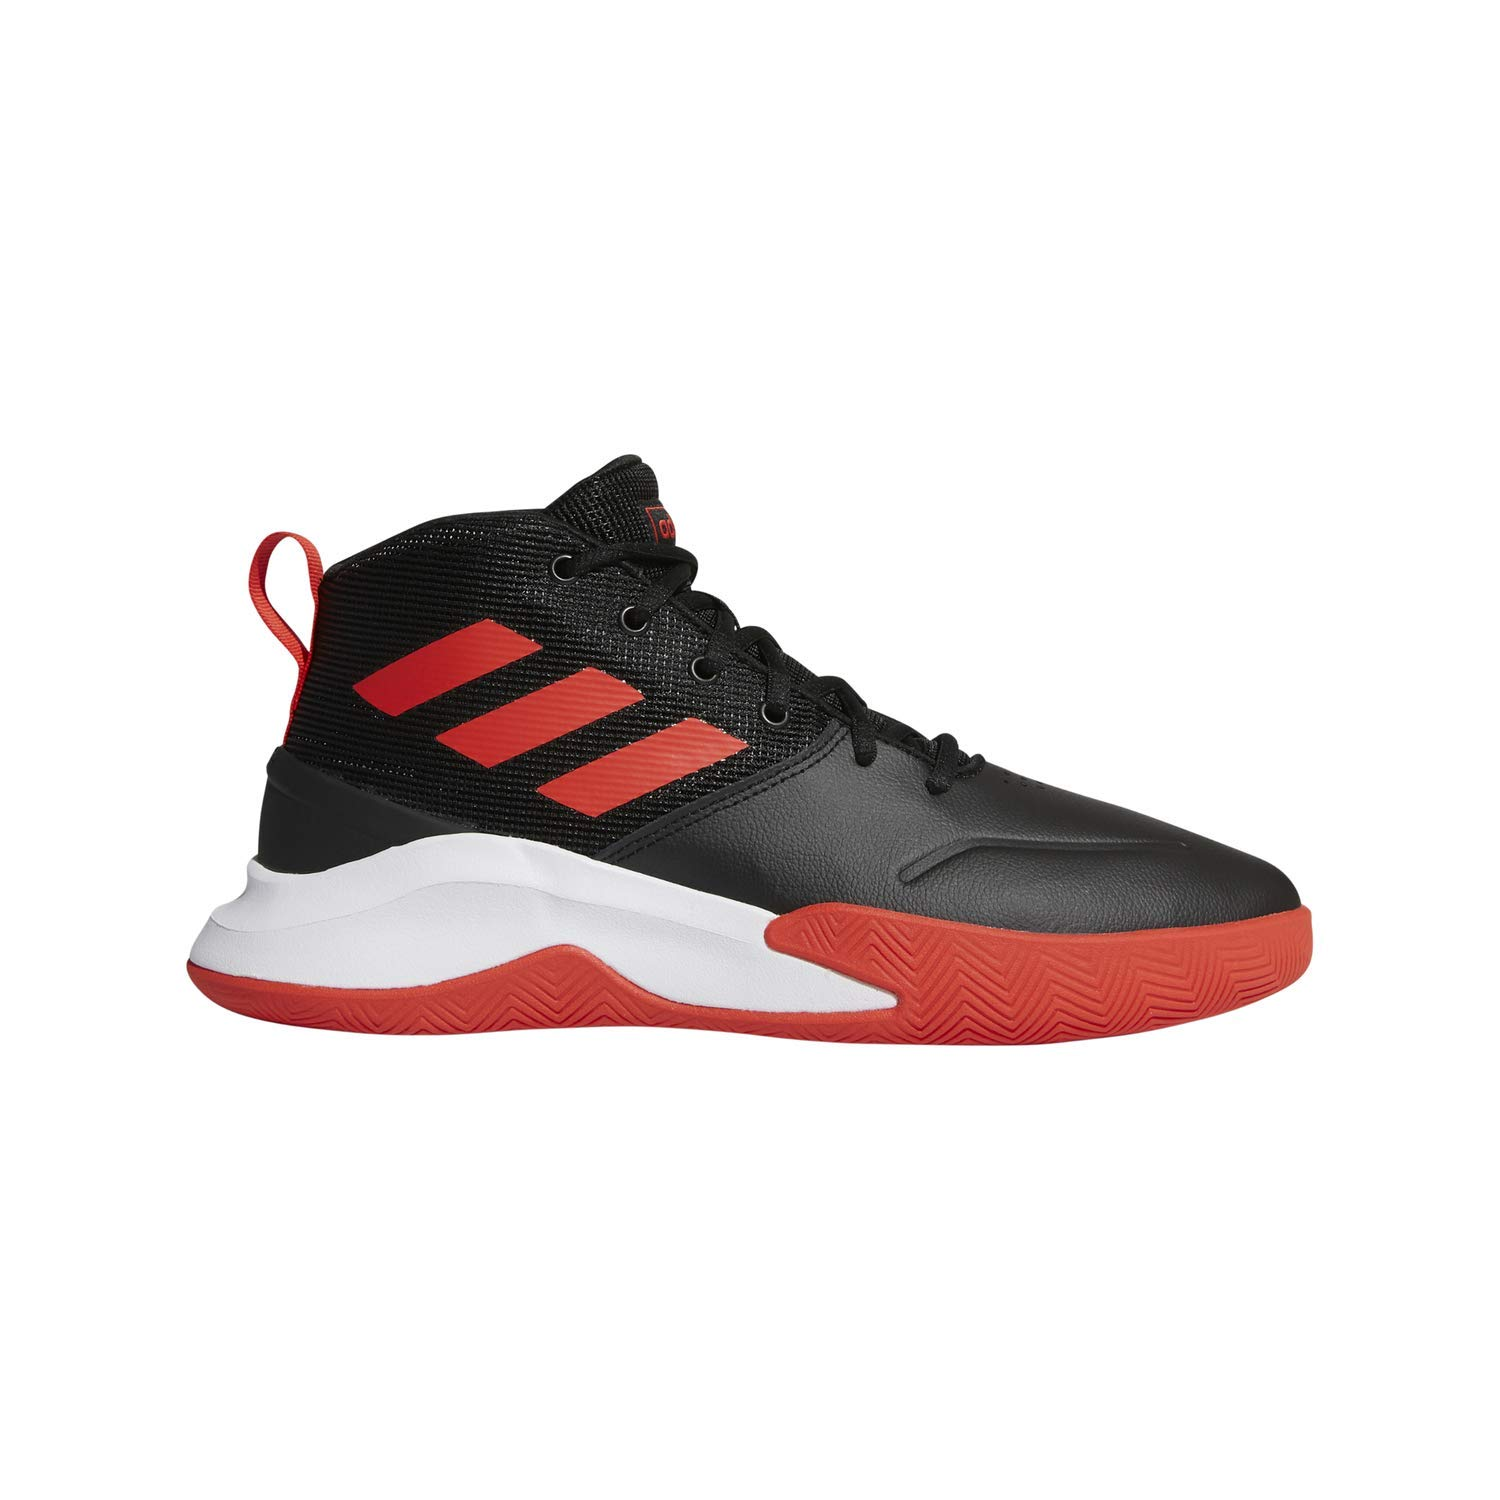 adidas Men s Ownthegame Wide Basketball Shoe